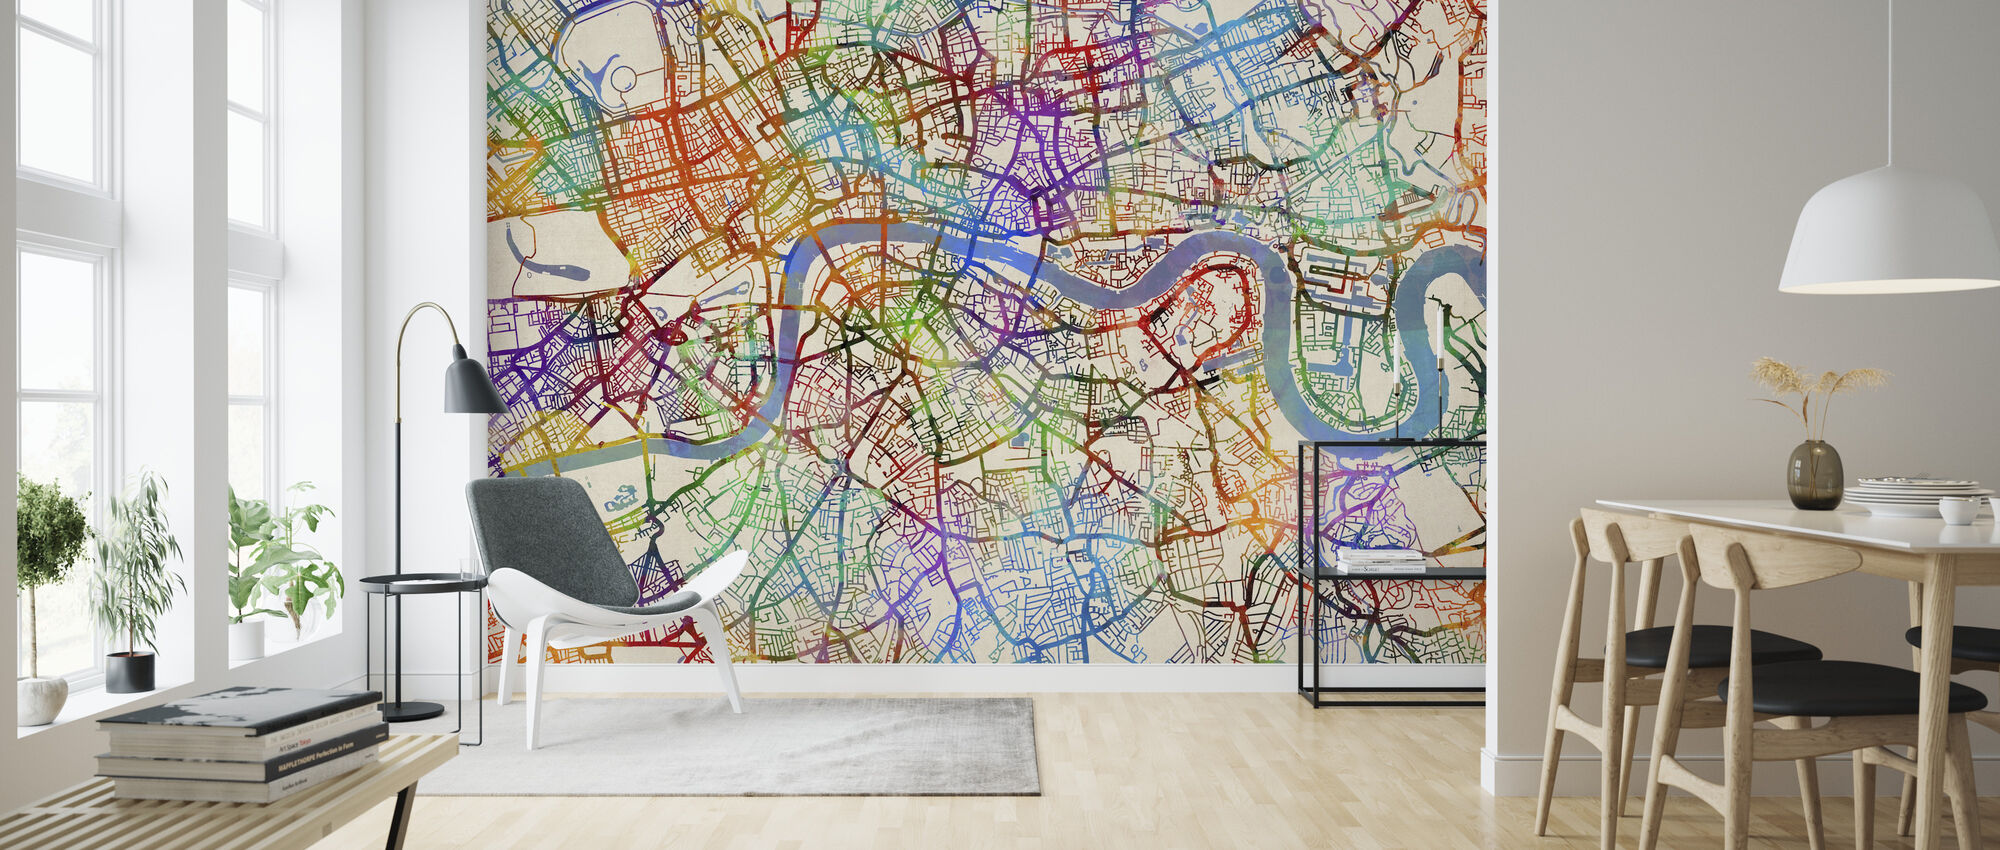 London England Street Map - Wallpaper - Living Room